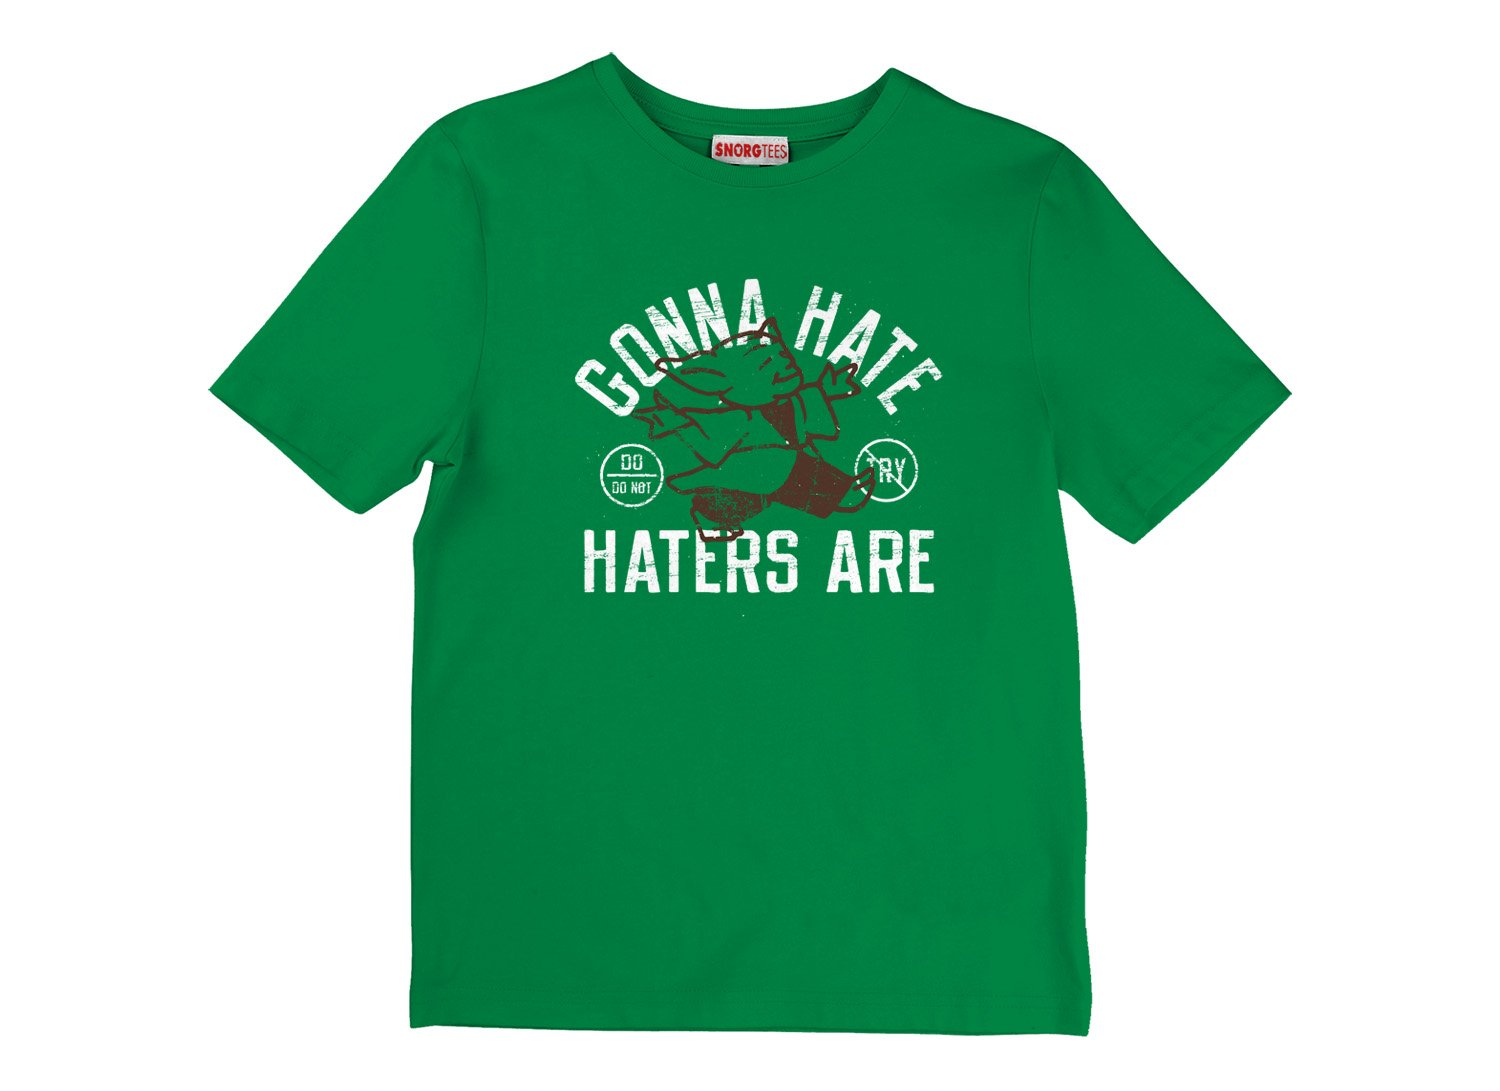 Gonna Hate Haters Are on Kids T-Shirt